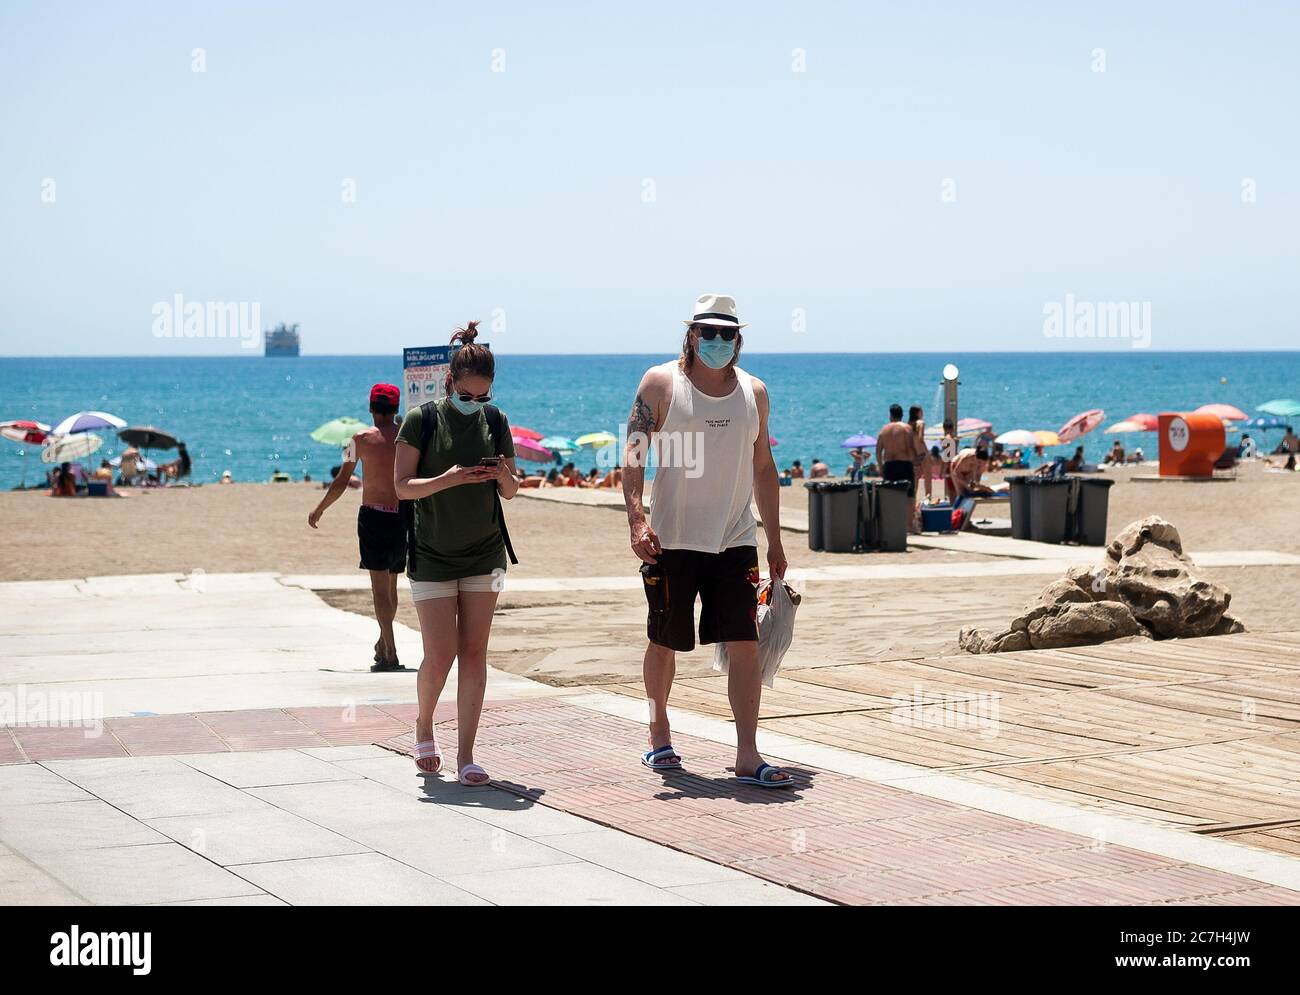 Malaga, Spain. 17th July, 2020. A couple wearing face masks are seen at La Malagueta beach amid coronavirus crisis.The appearance of new coronavirus (COVID-19) outbreak in Spain after easing of restrictions has caused the regional government to impose the obligatory use of face masks in outdoors places even when they observe a safe distance between people. This measure tries to curb the spread of coronavirus pandemic. Credit: SOPA Images Limited/Alamy Live News Stock Photo